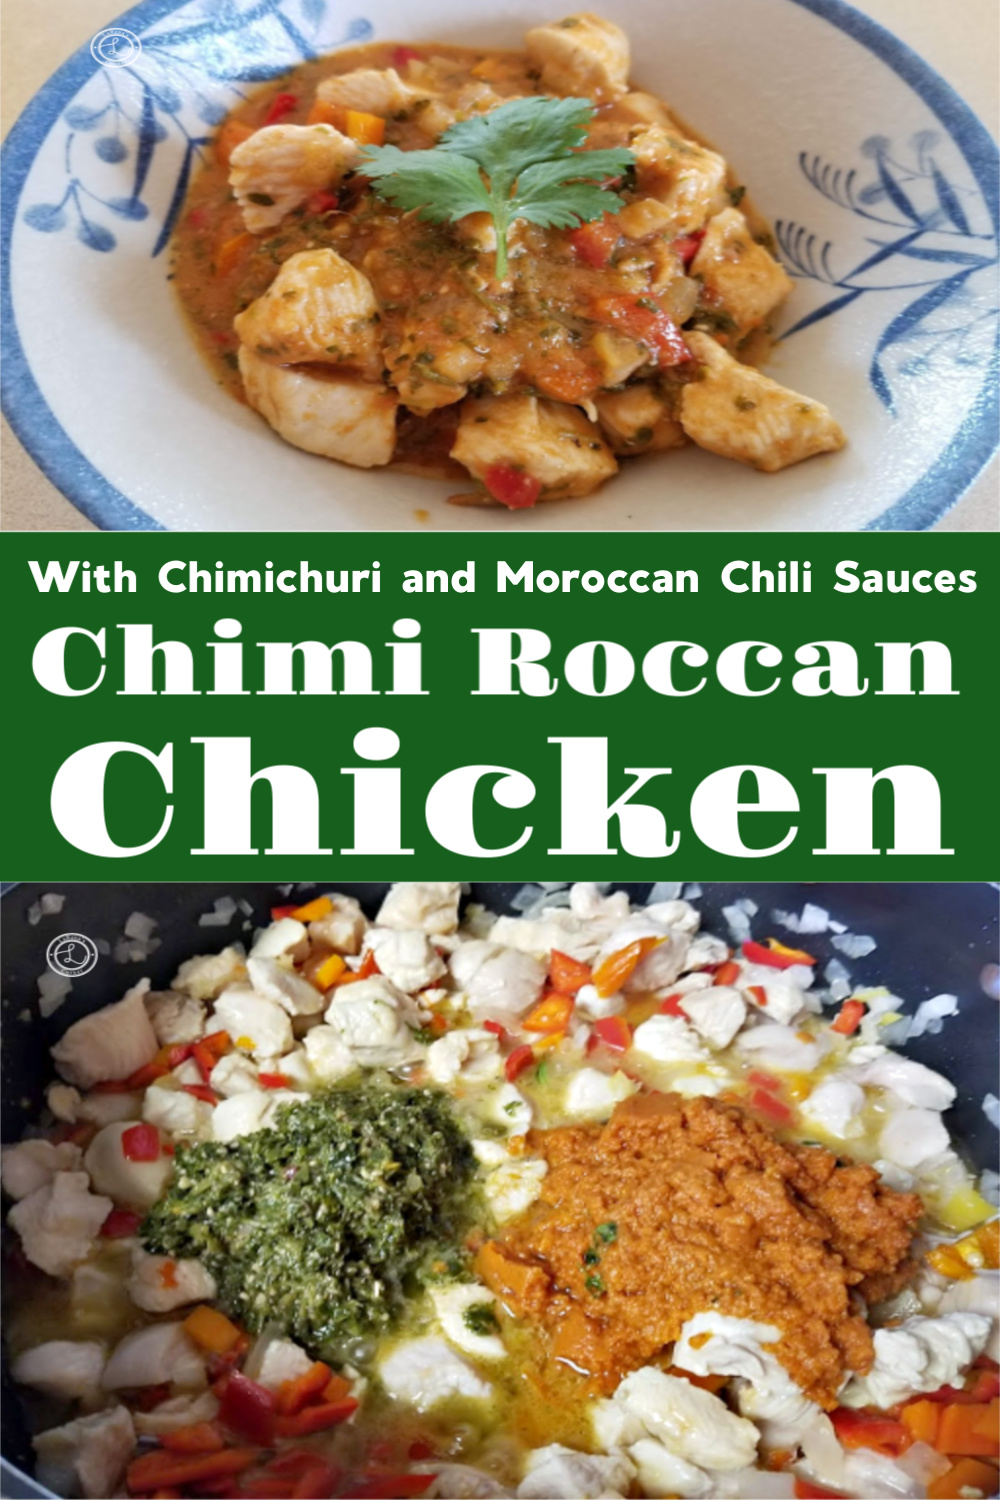 2 Pictures of making Chimi Roccan Chicken. One pictures adding Chimichurri and Moroccan Chili Sauce in the pan. Second picture is Chimichurri Chicken in a bowl.